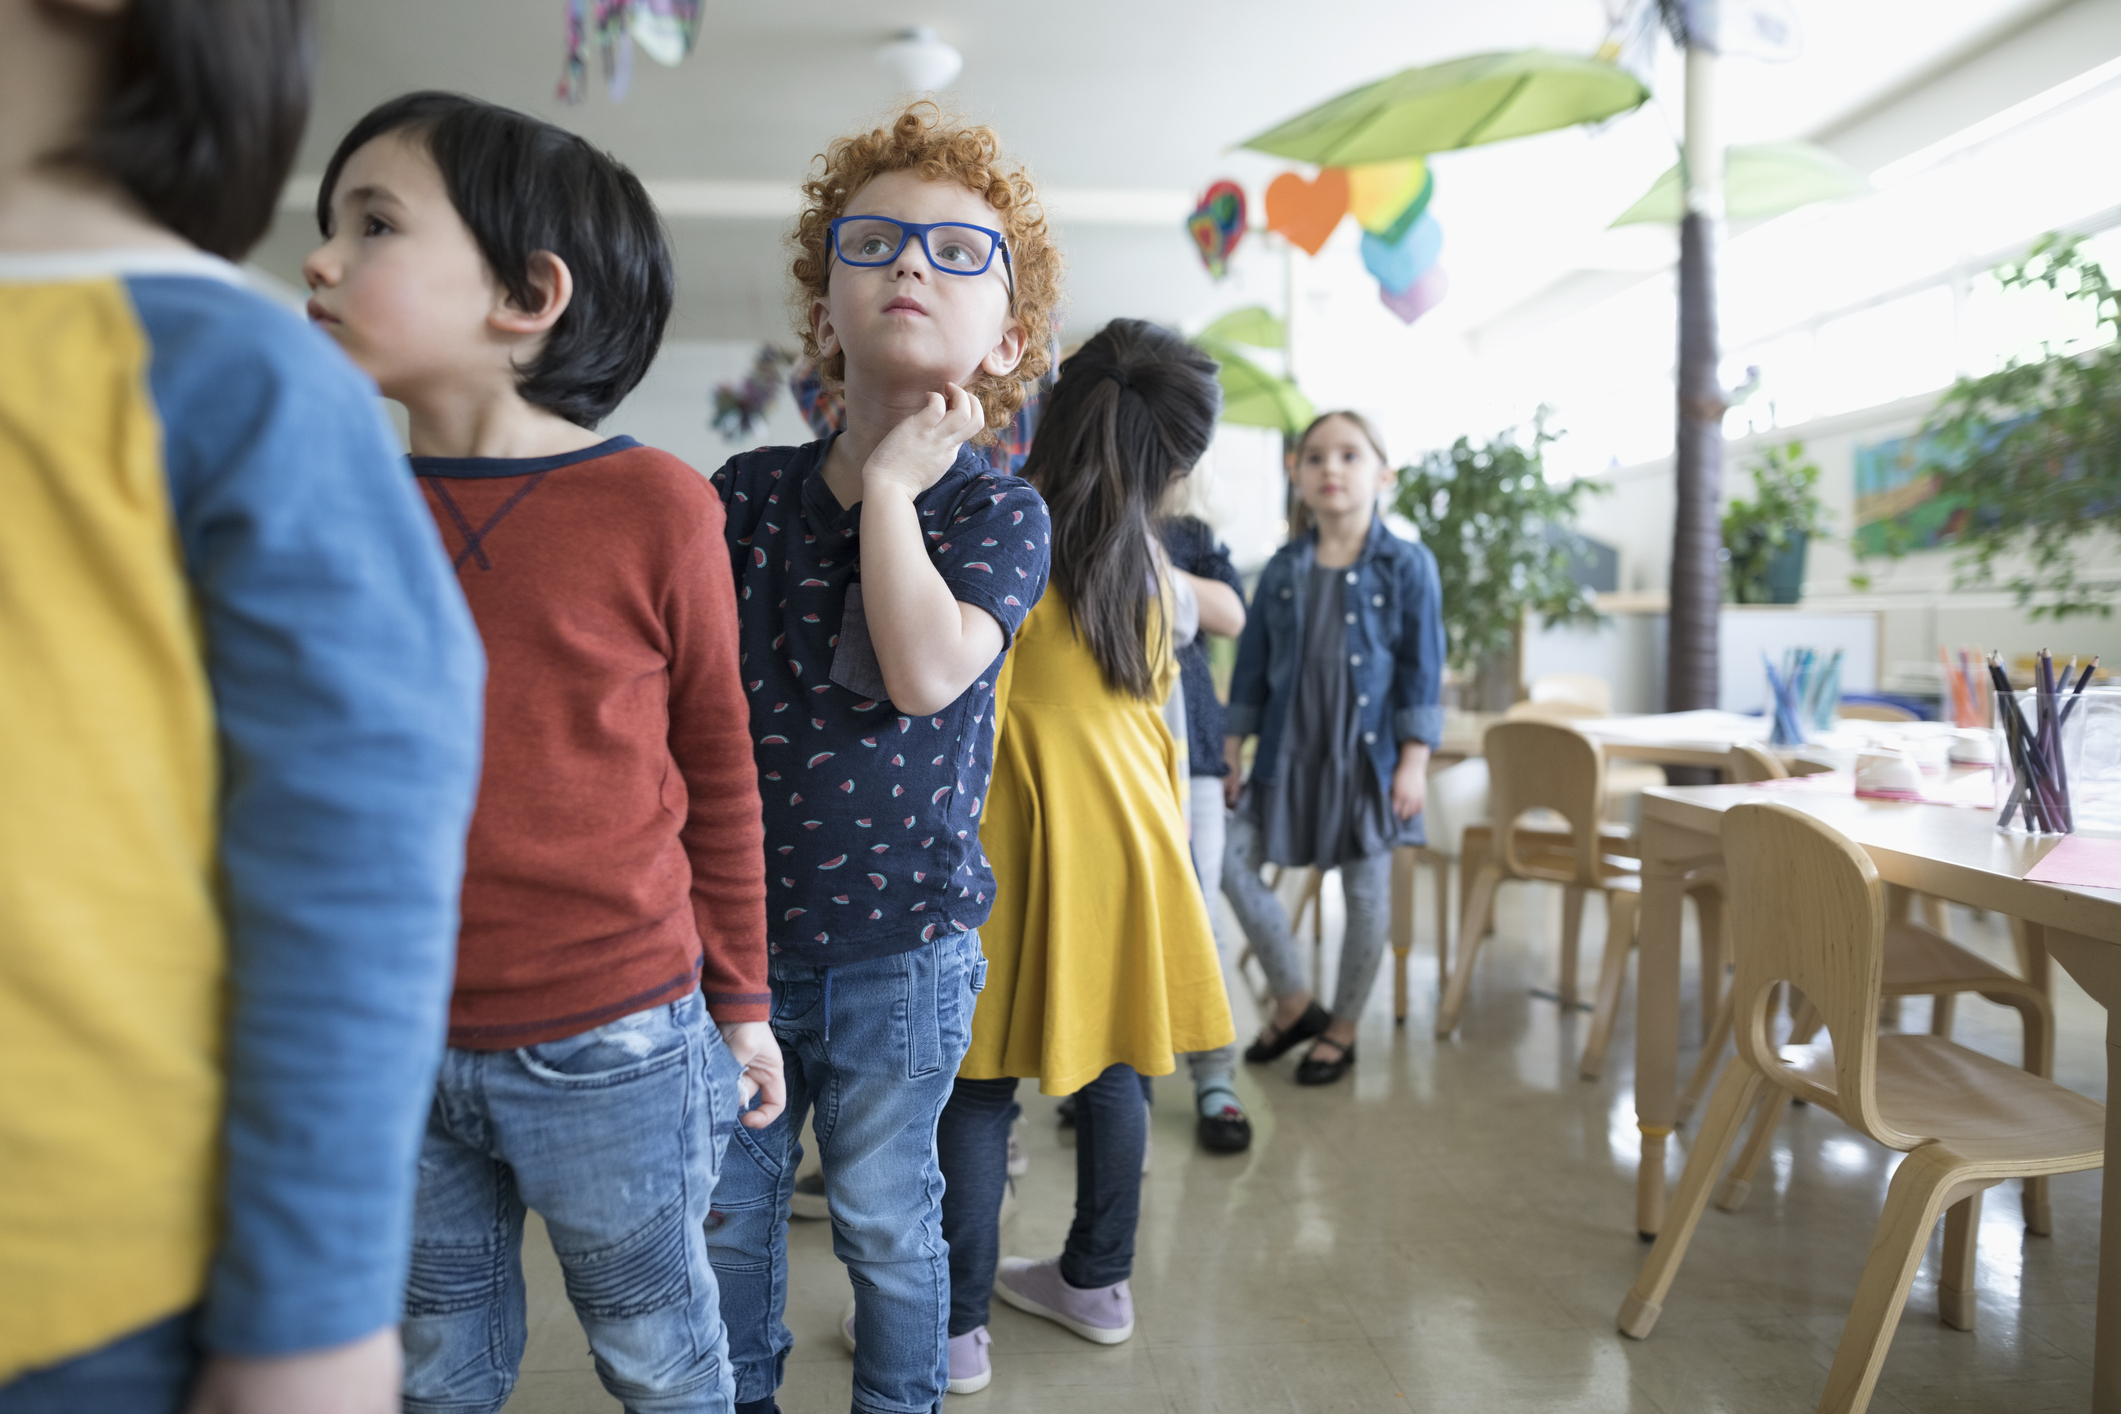 What are the job prospects for gifted children? Off the back of new SBS series 'Child Genius', Nicola Heath examines whether or not gifted kids are ...